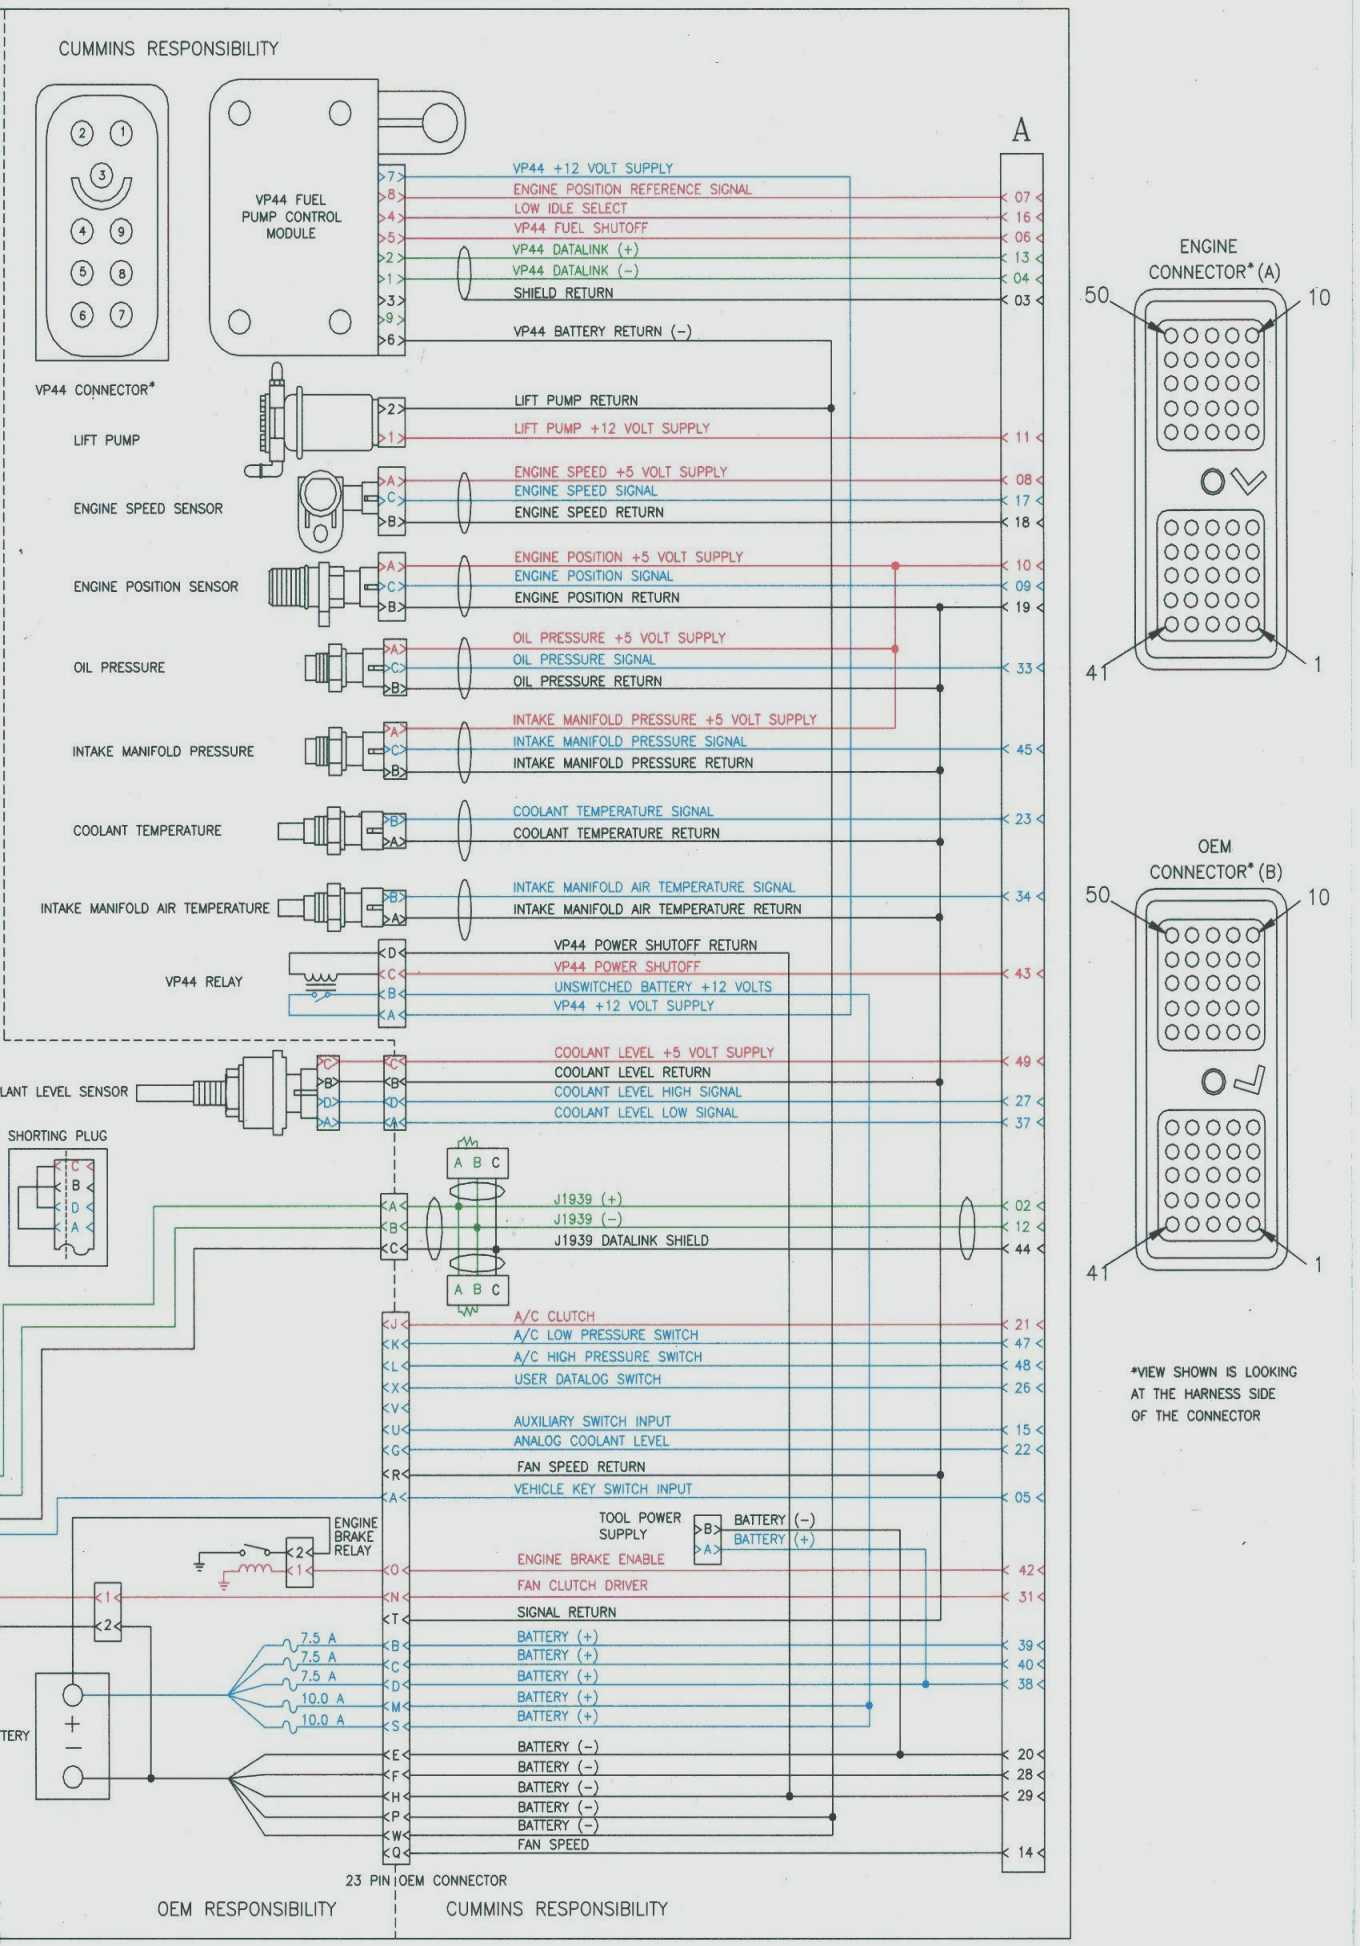 Dodge Dakota Trailer Wiring Diagram - Trusted Wiring Diagram - 2006 Dodge Dakota Trailer Wiring Diagram